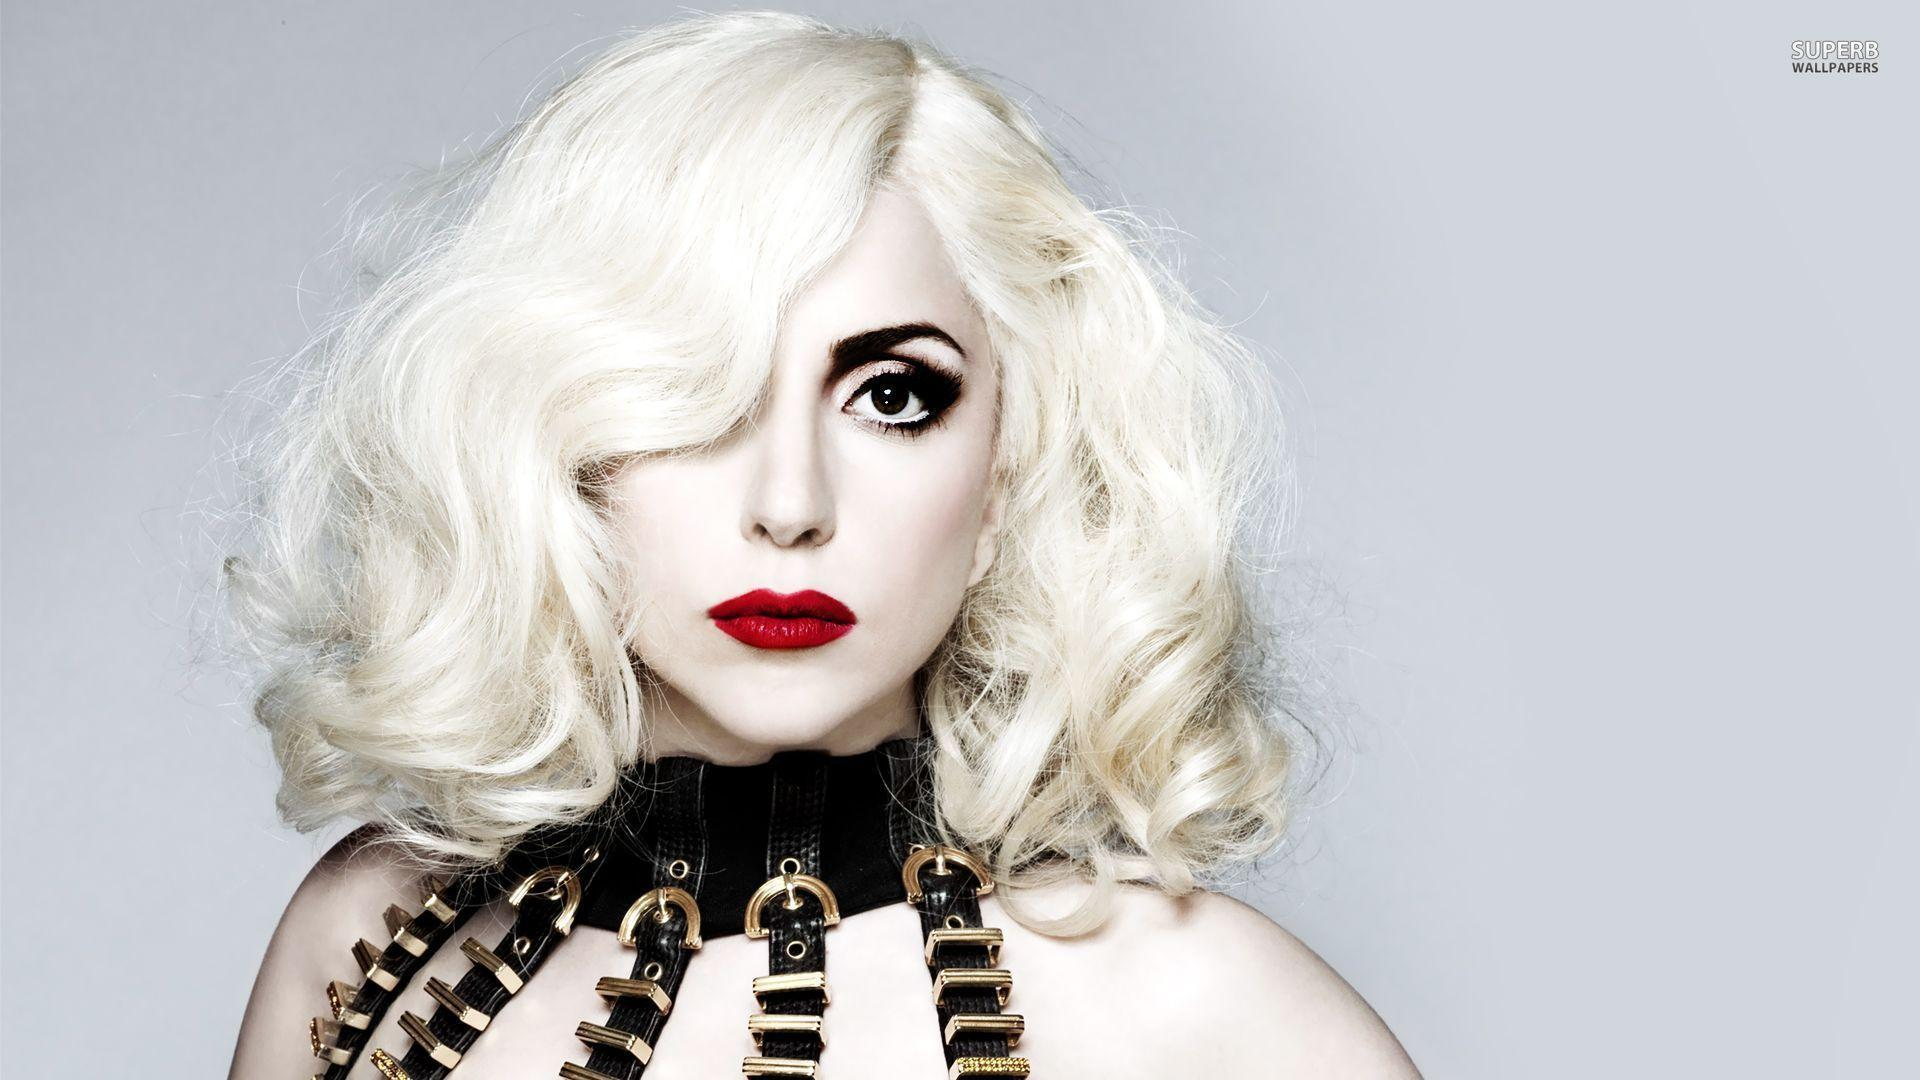 Lady Gaga Wallpapers 2015 - Wallpaper Cave